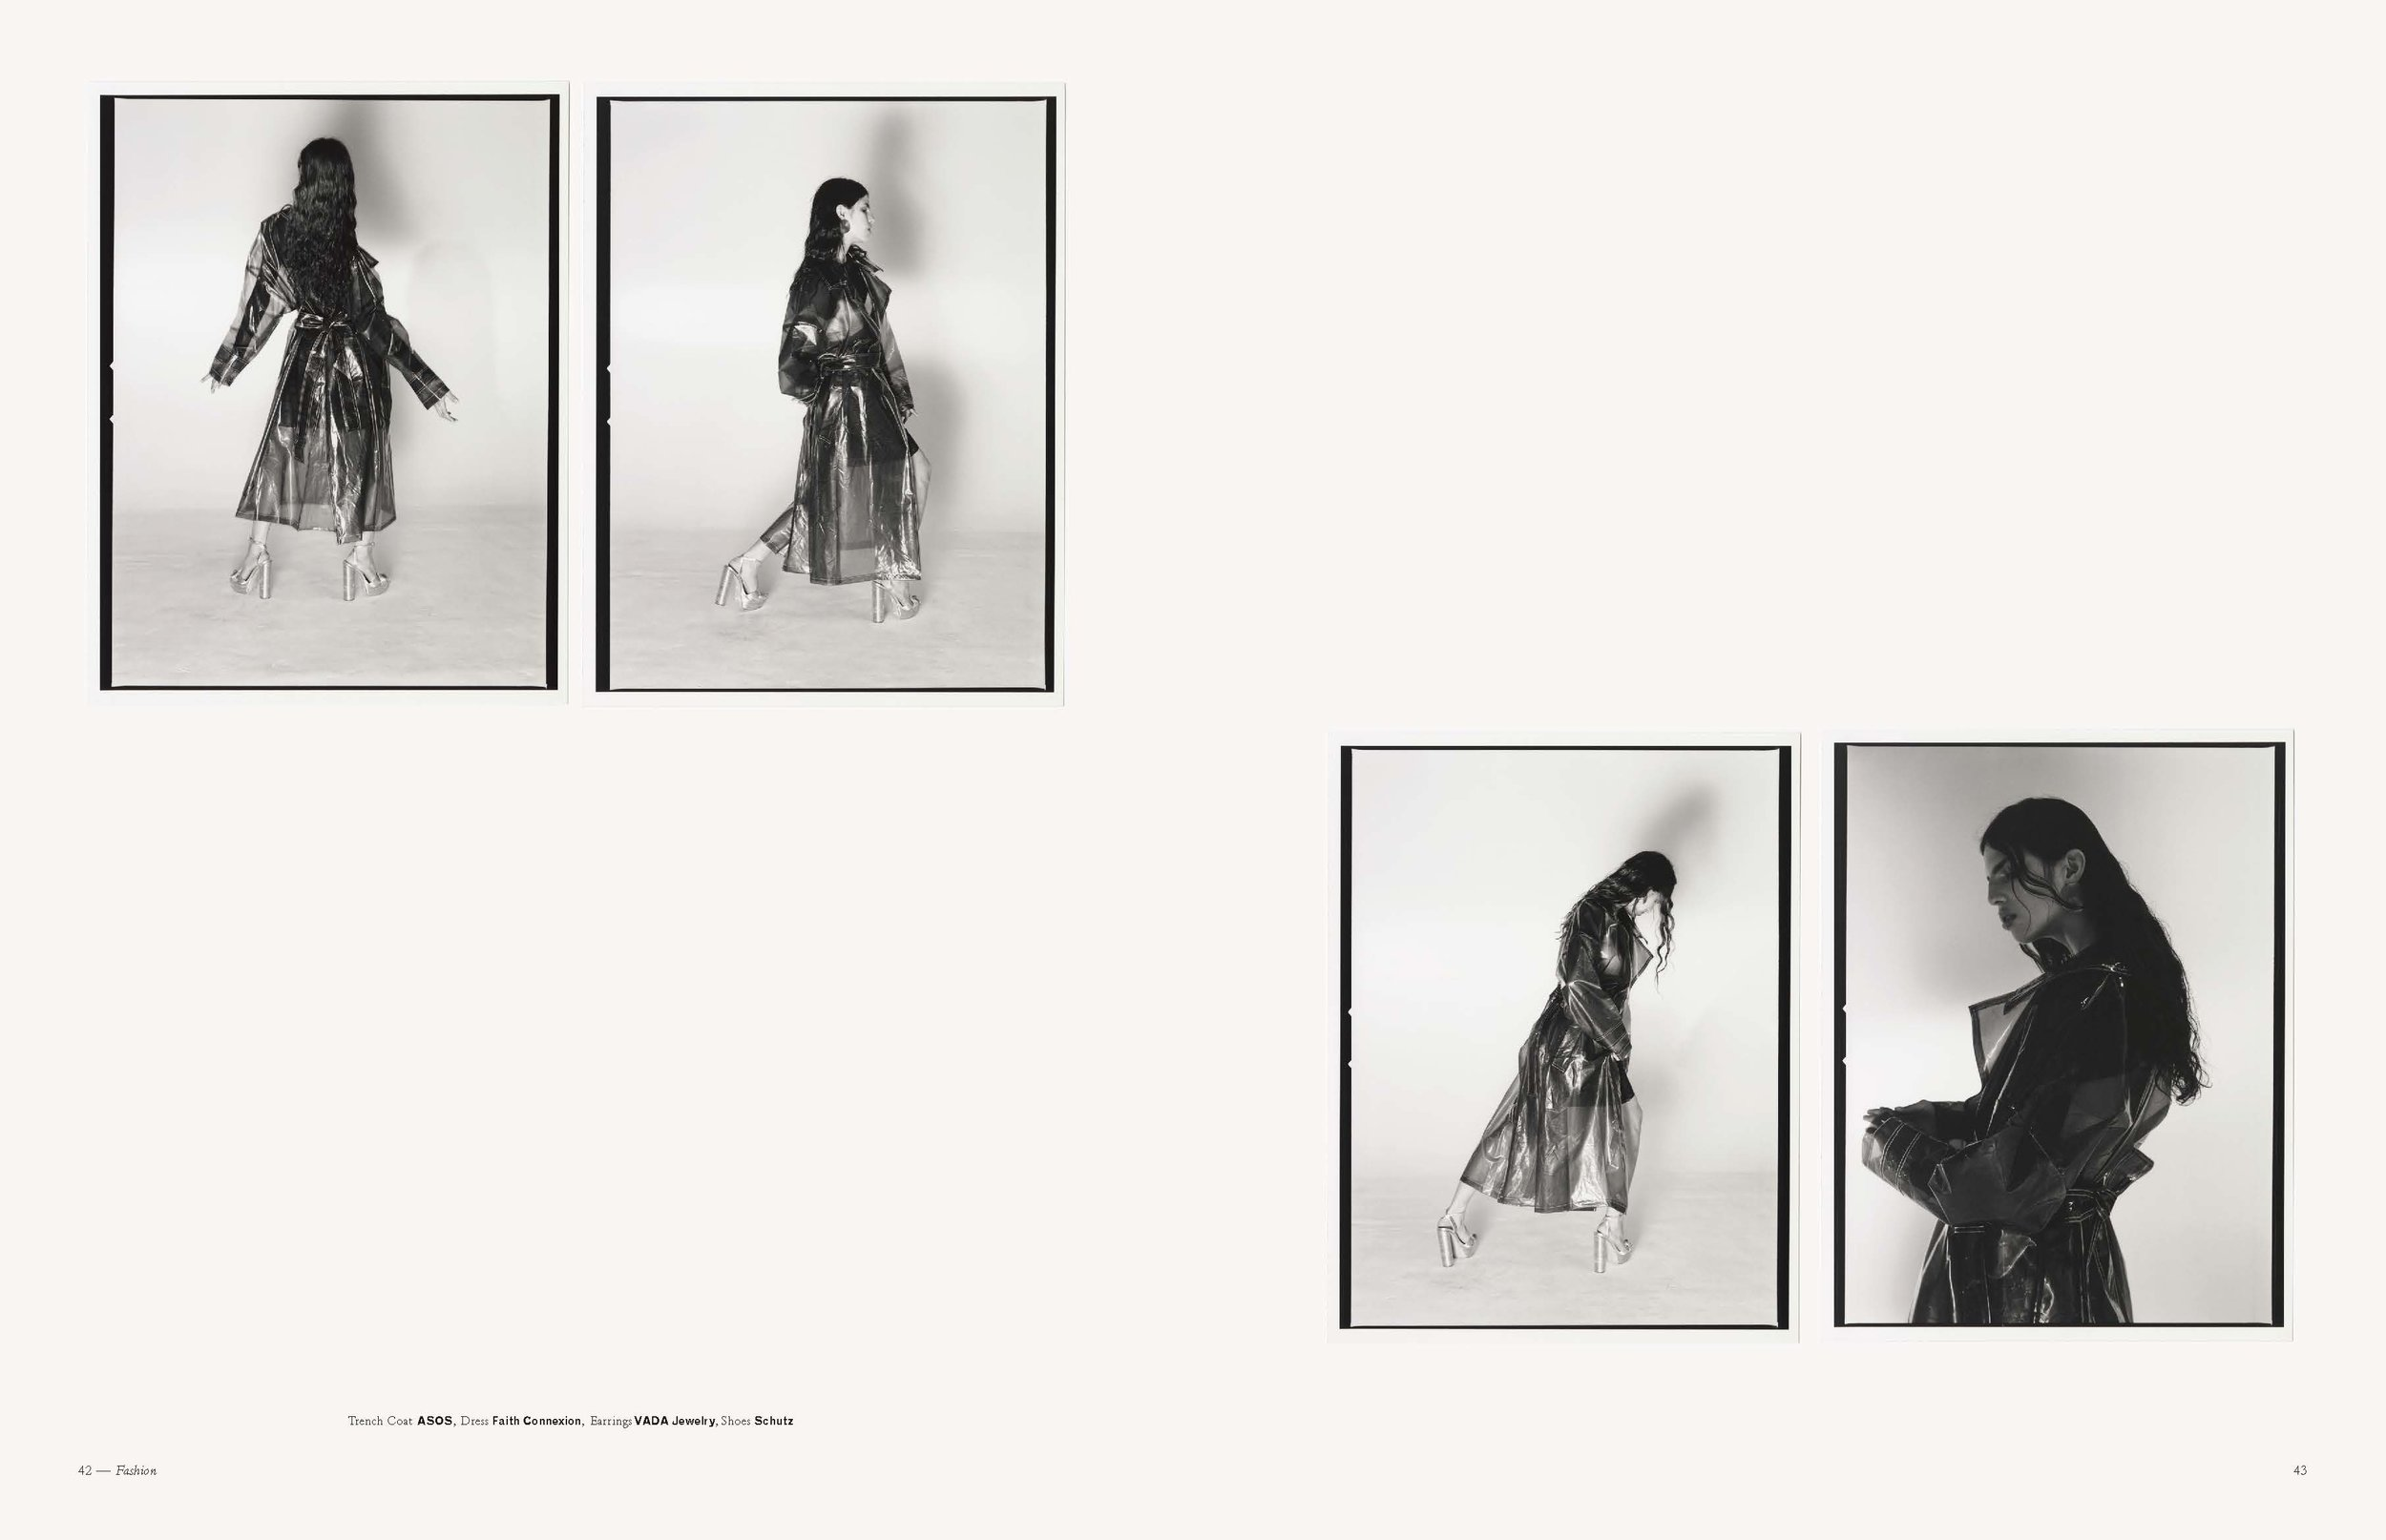 Pages from Teeth-Magazine-Issue-07-Alone-With-You_Page_2.jpg